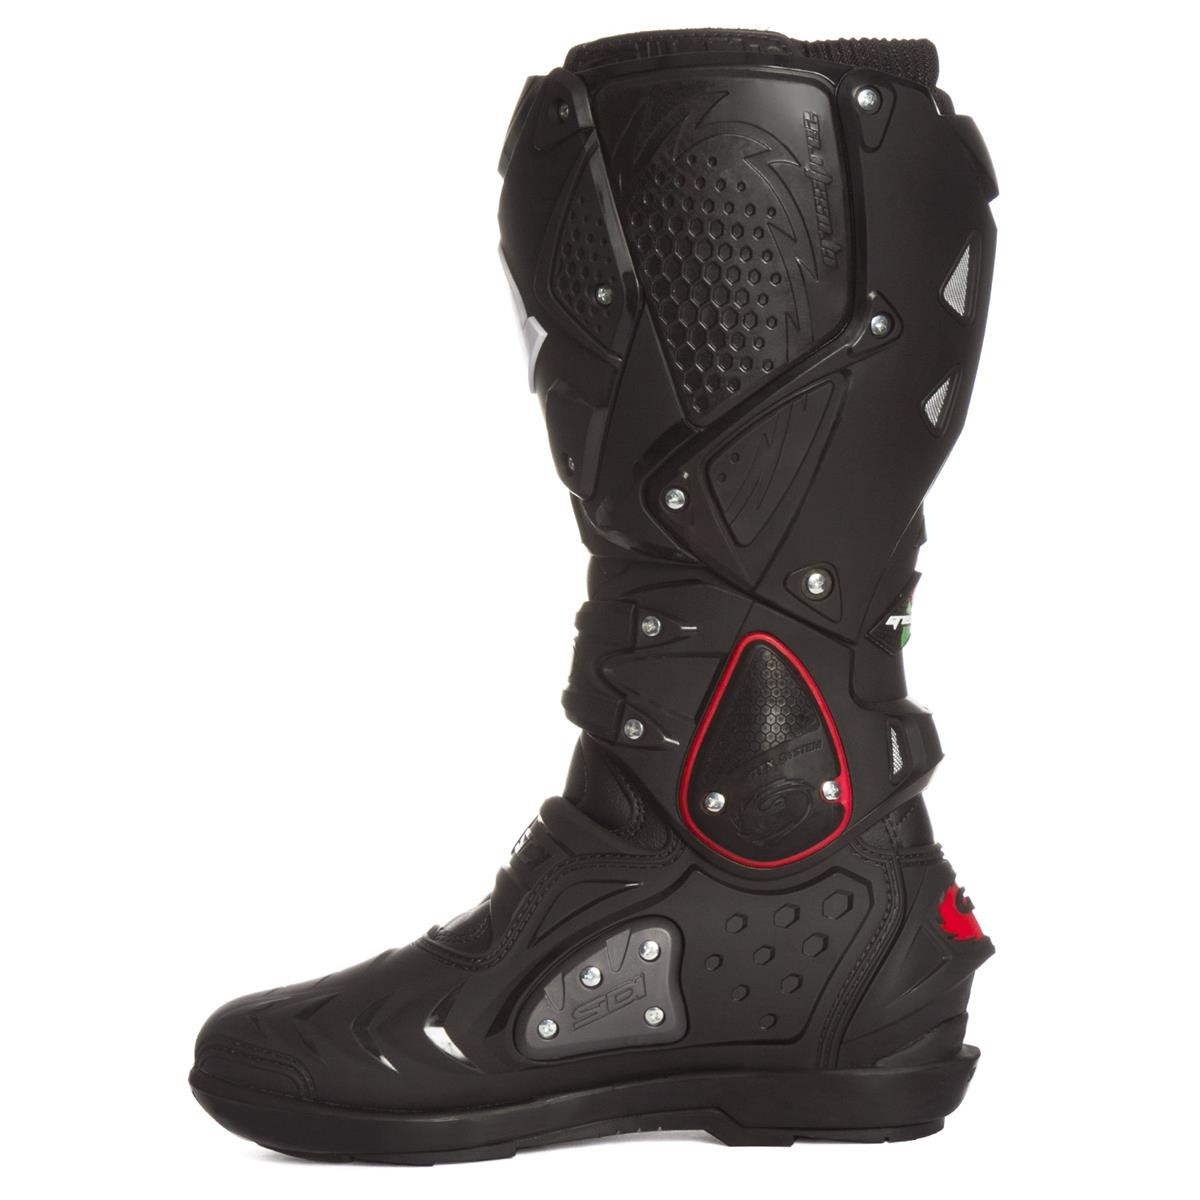 sidi mx boots crossfire 2 srs black 2019 maciag offroad. Black Bedroom Furniture Sets. Home Design Ideas